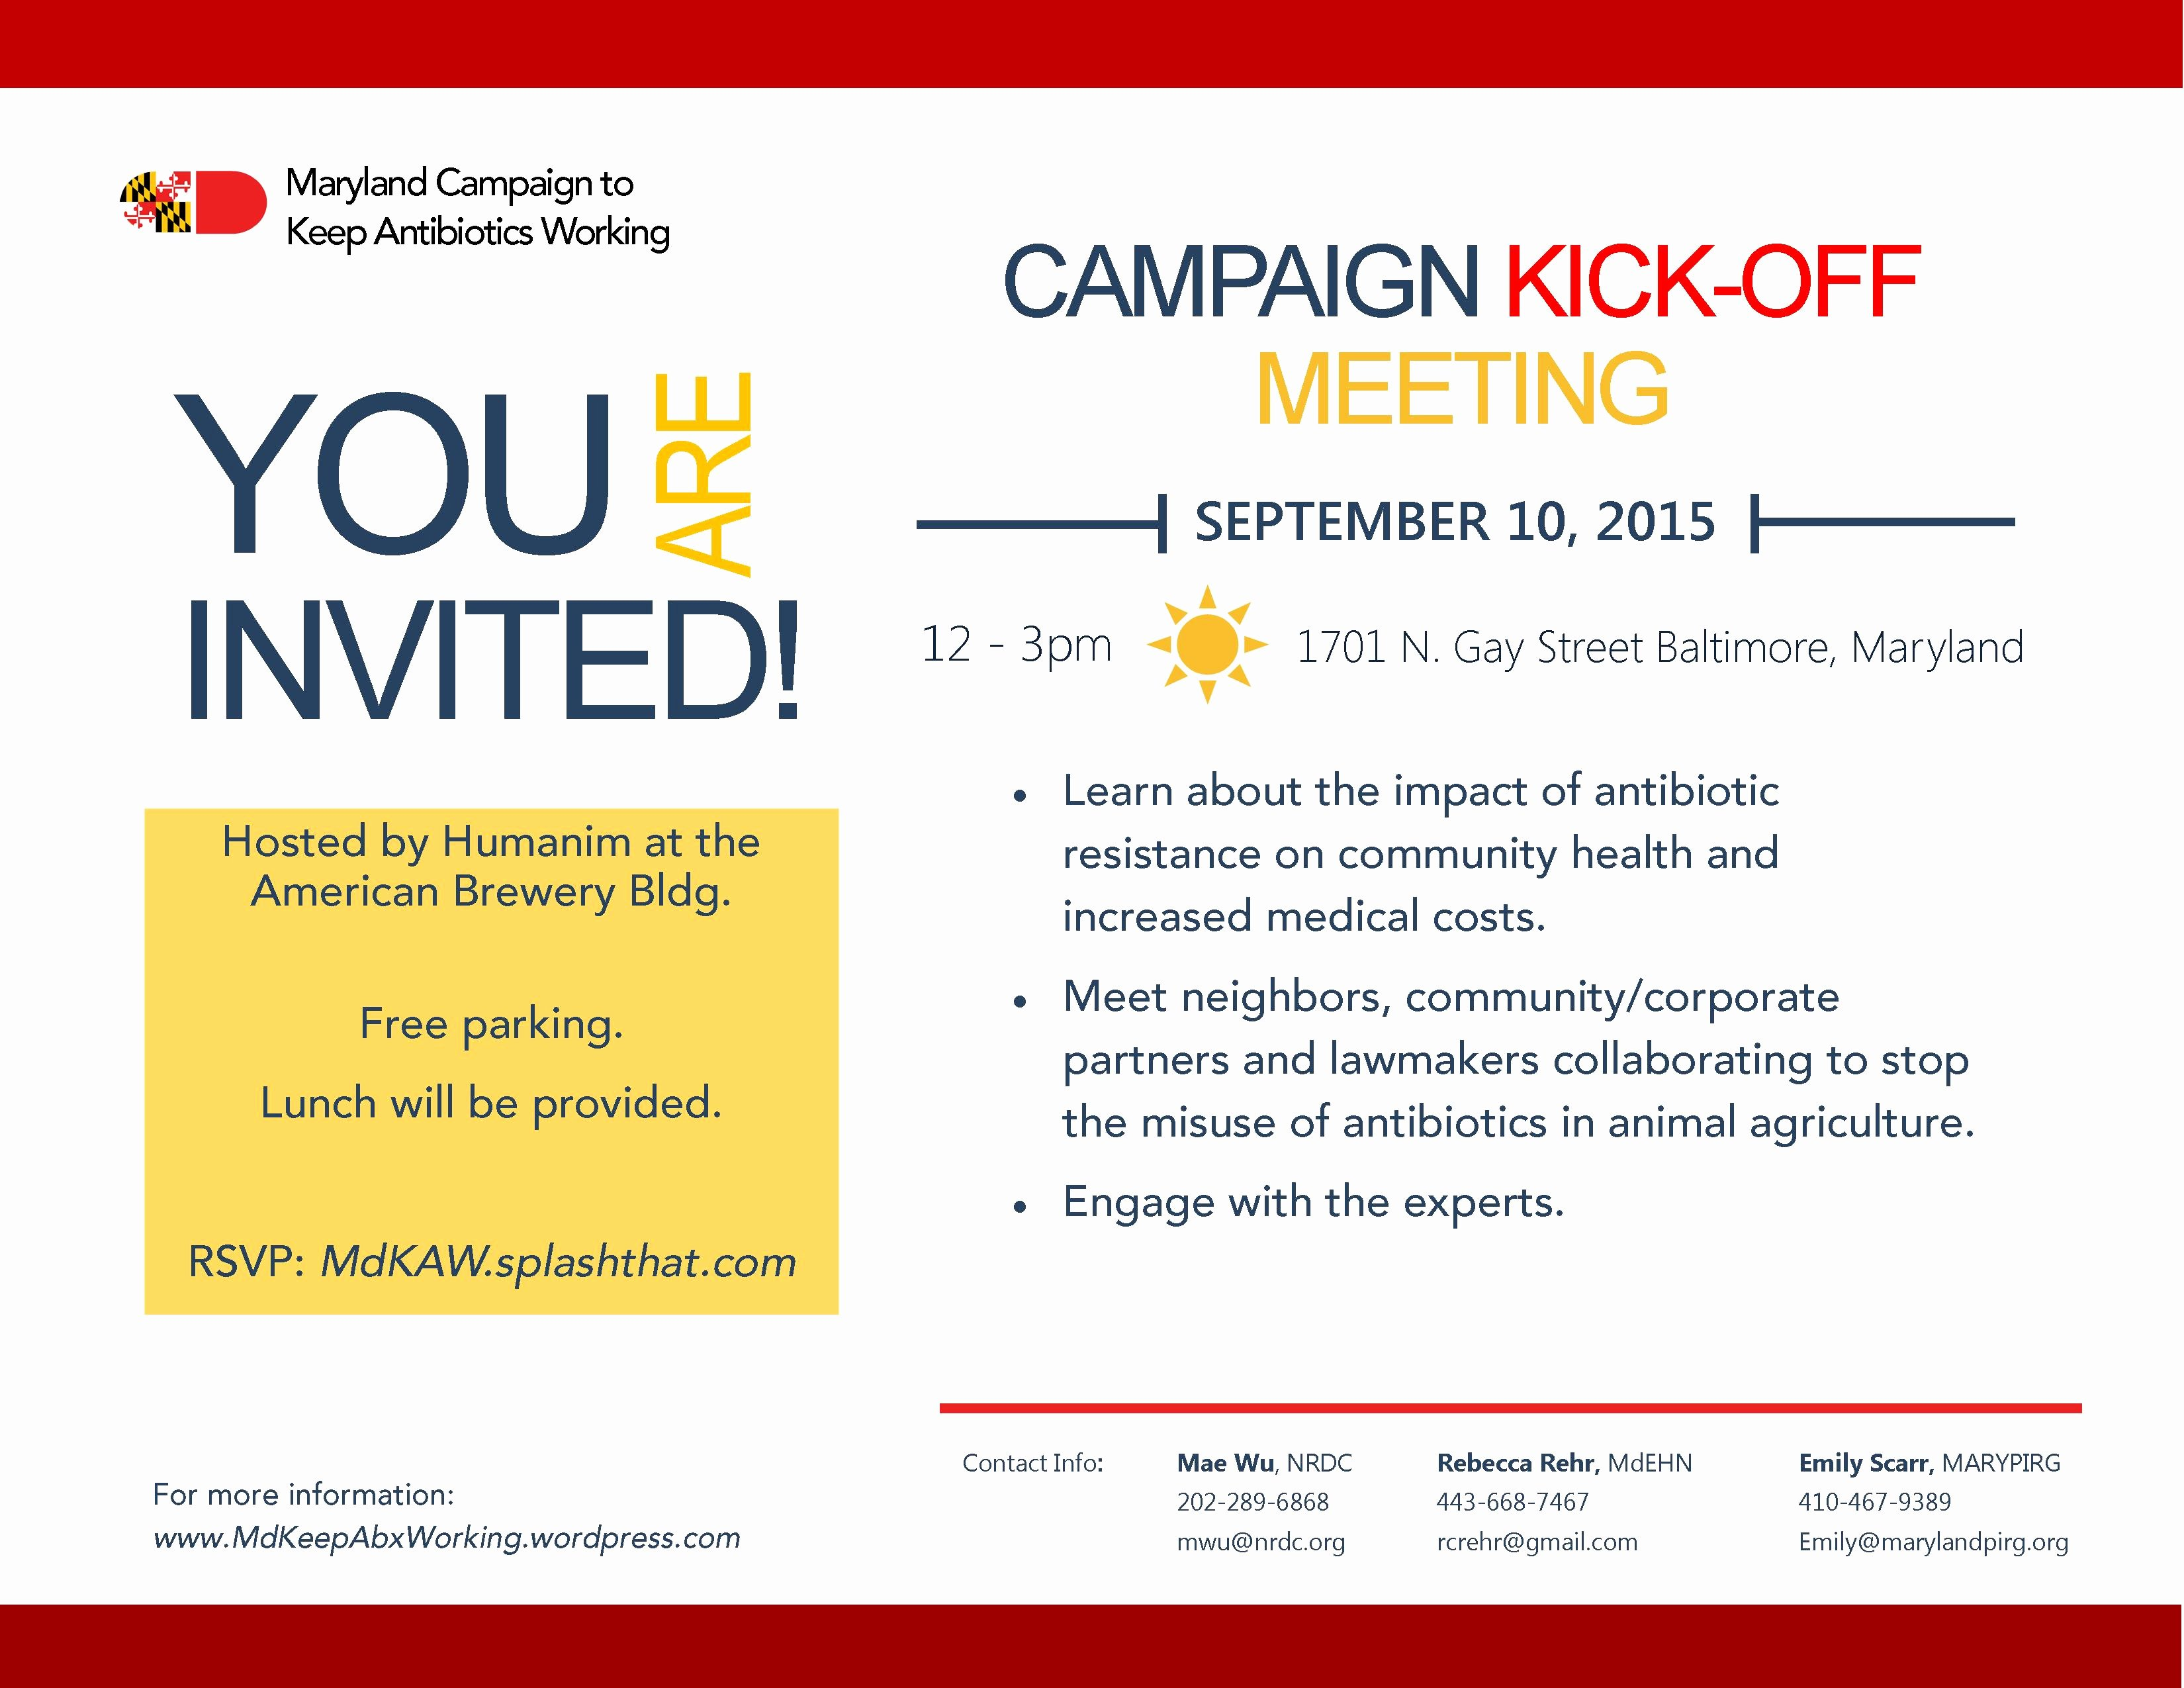 Kick Off Meeting Template Awesome Campaign Kick F Meeting Details – Maryland Campaign to